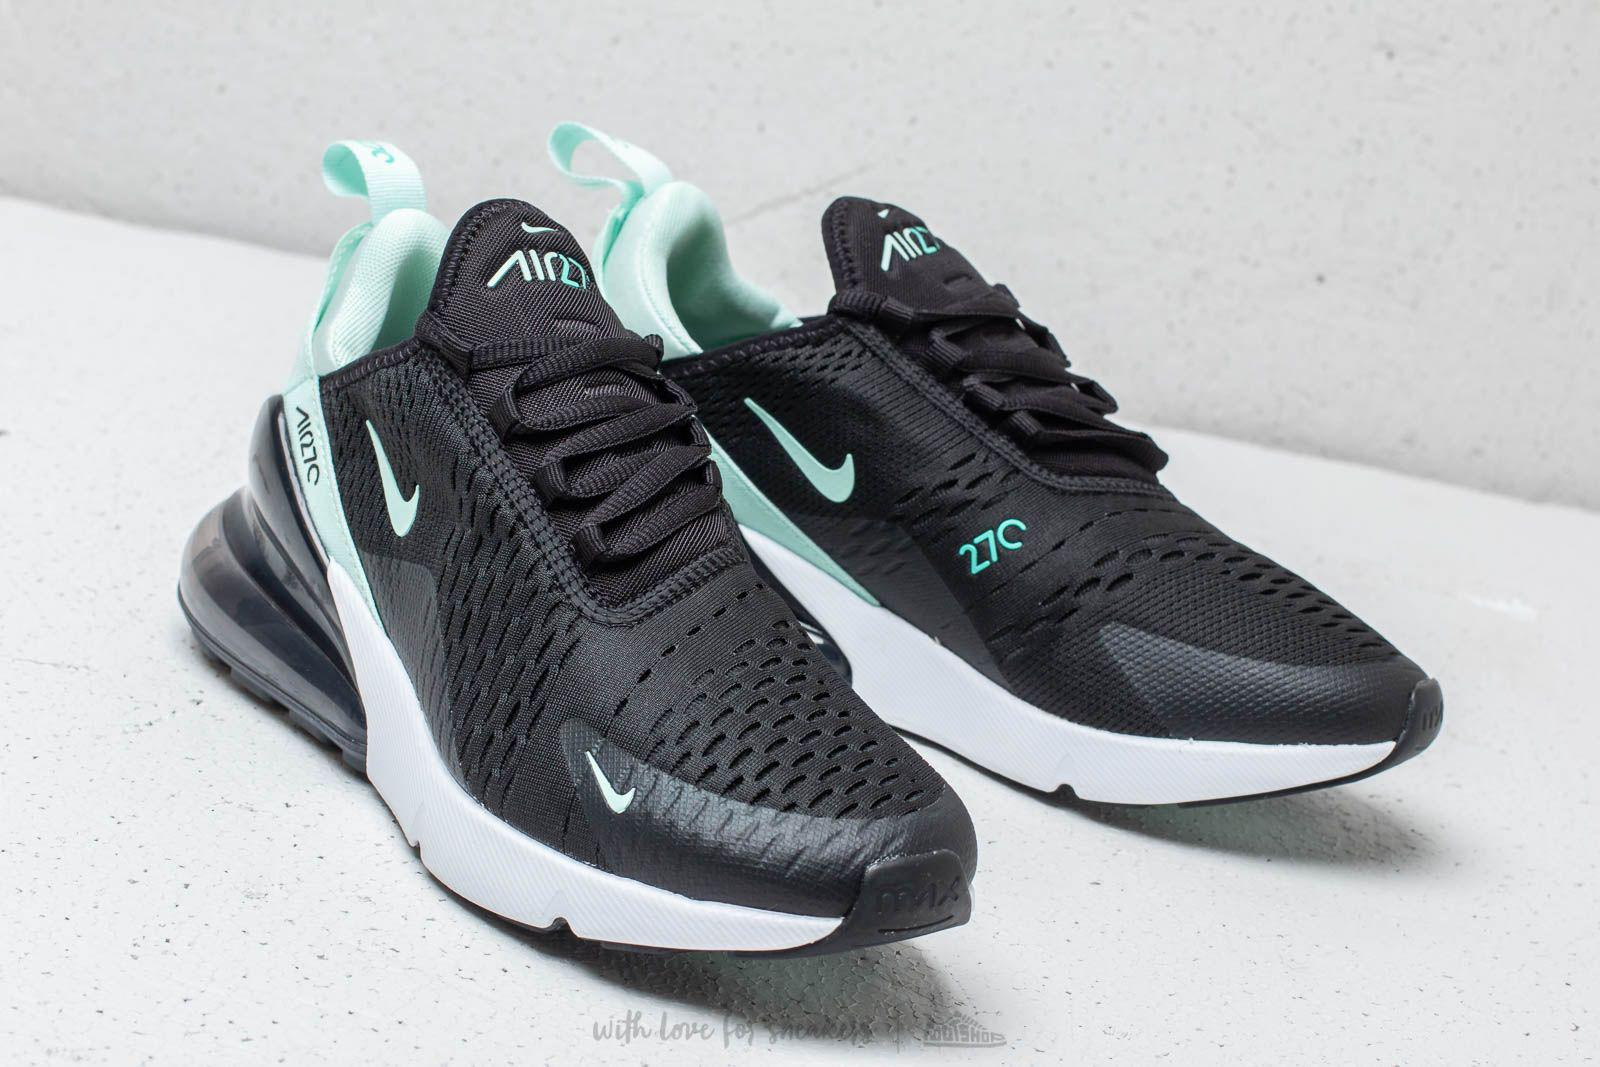 nike air max 270 black/hyper turquoise/white/igloo